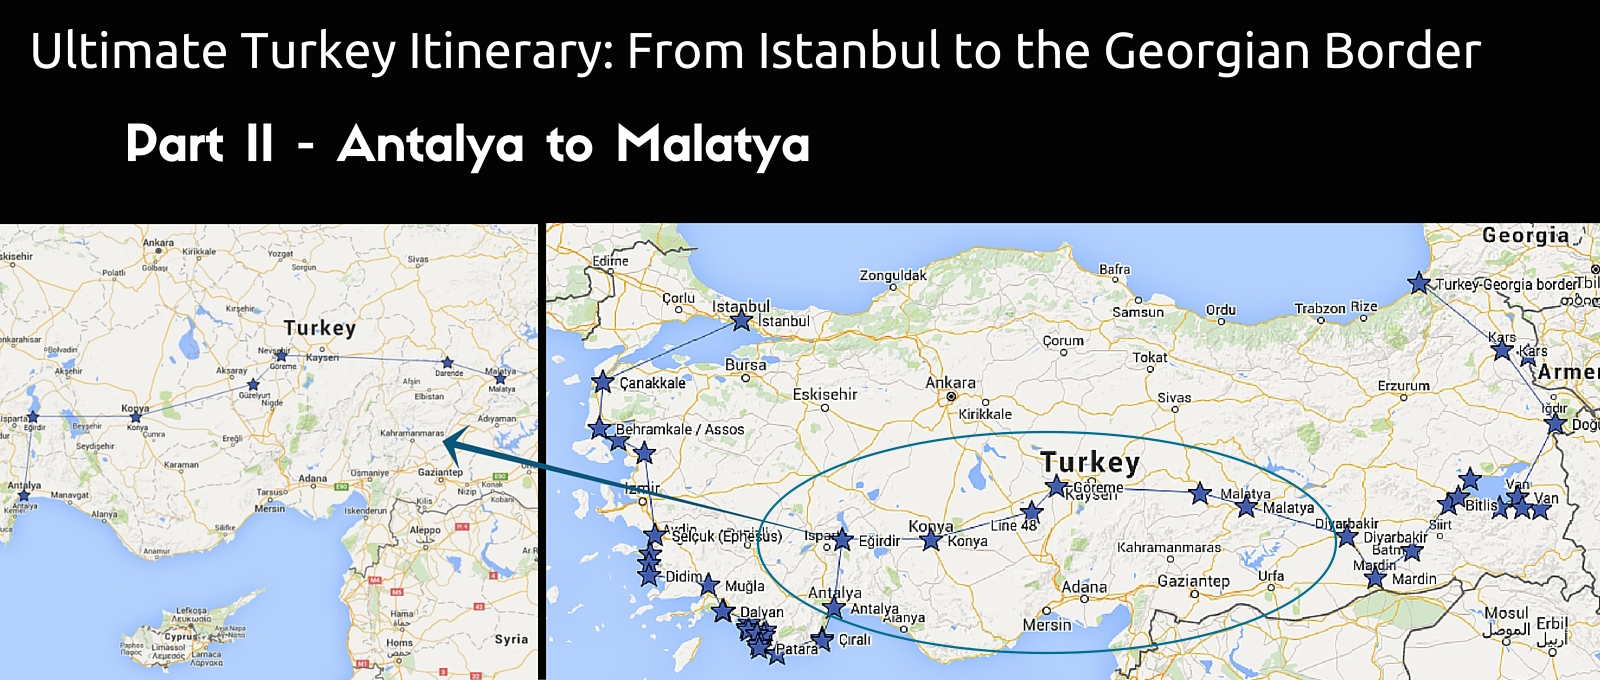 Antalaya to Malatya route | Ultimate Turkey itinerary